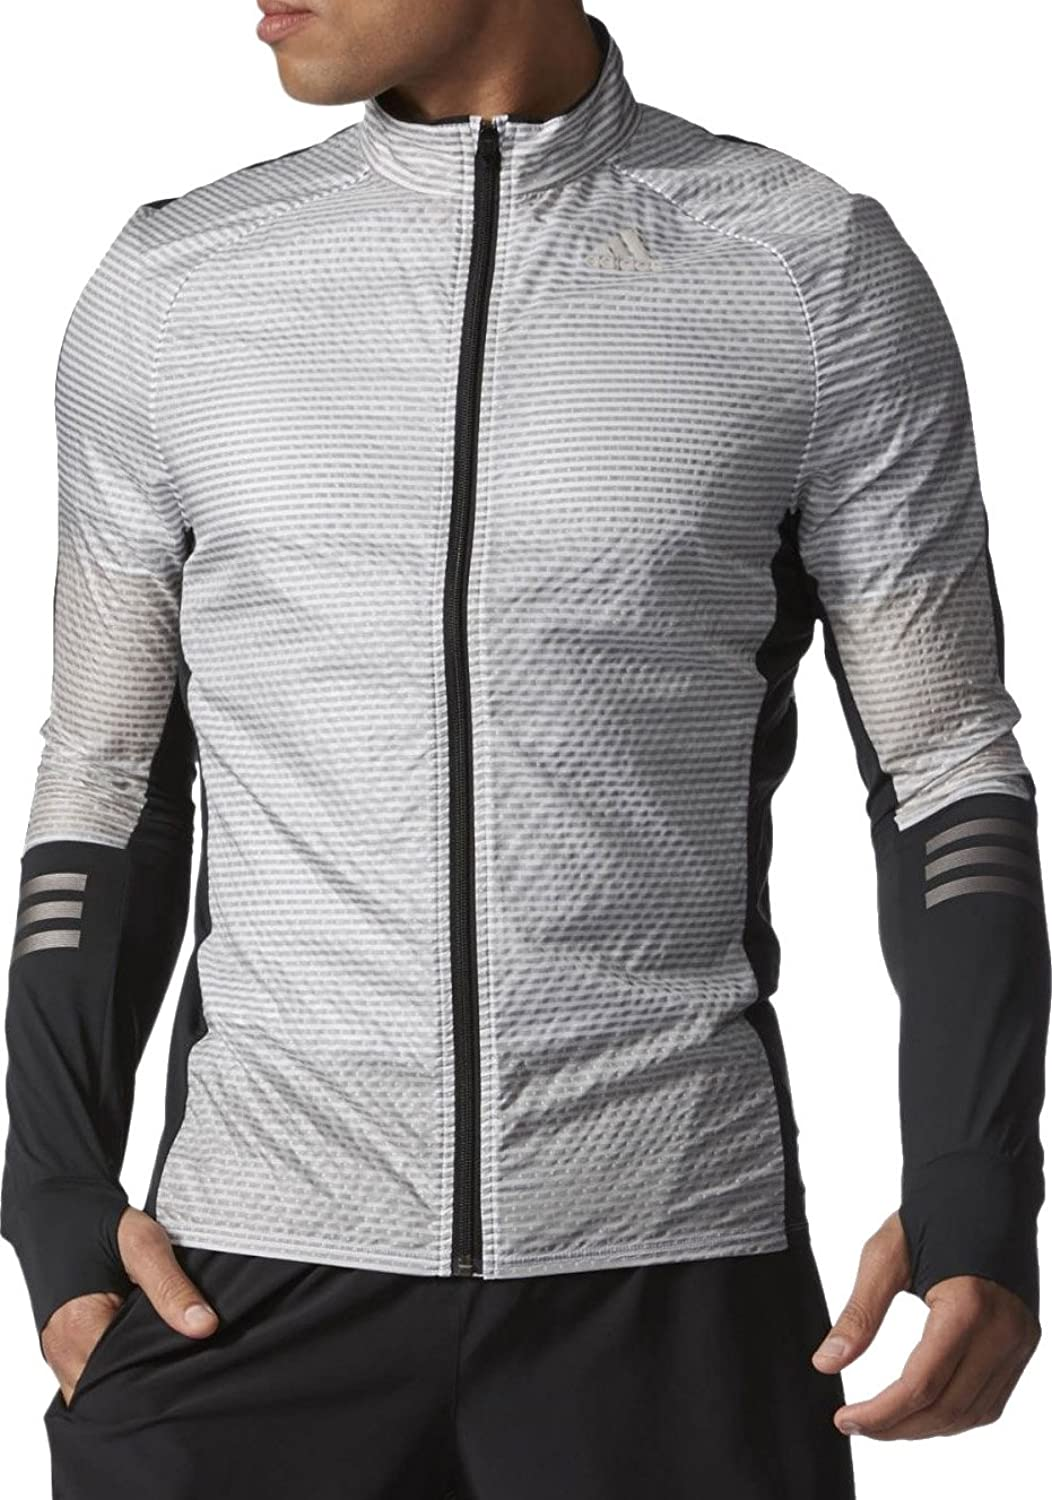 adidas Adizero Climaproof Mens Running Jacket